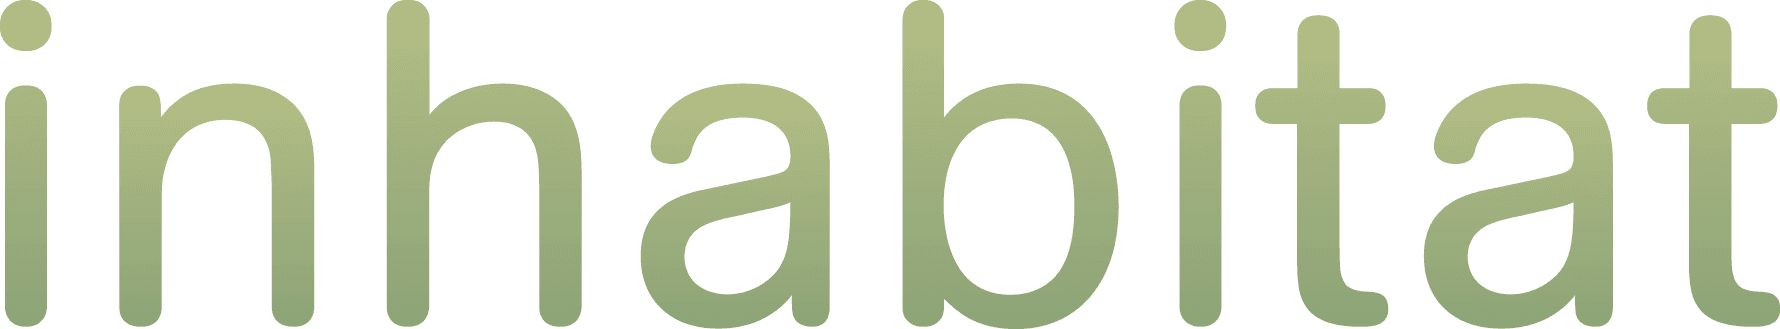 Inhabitat_logo-compressor.png